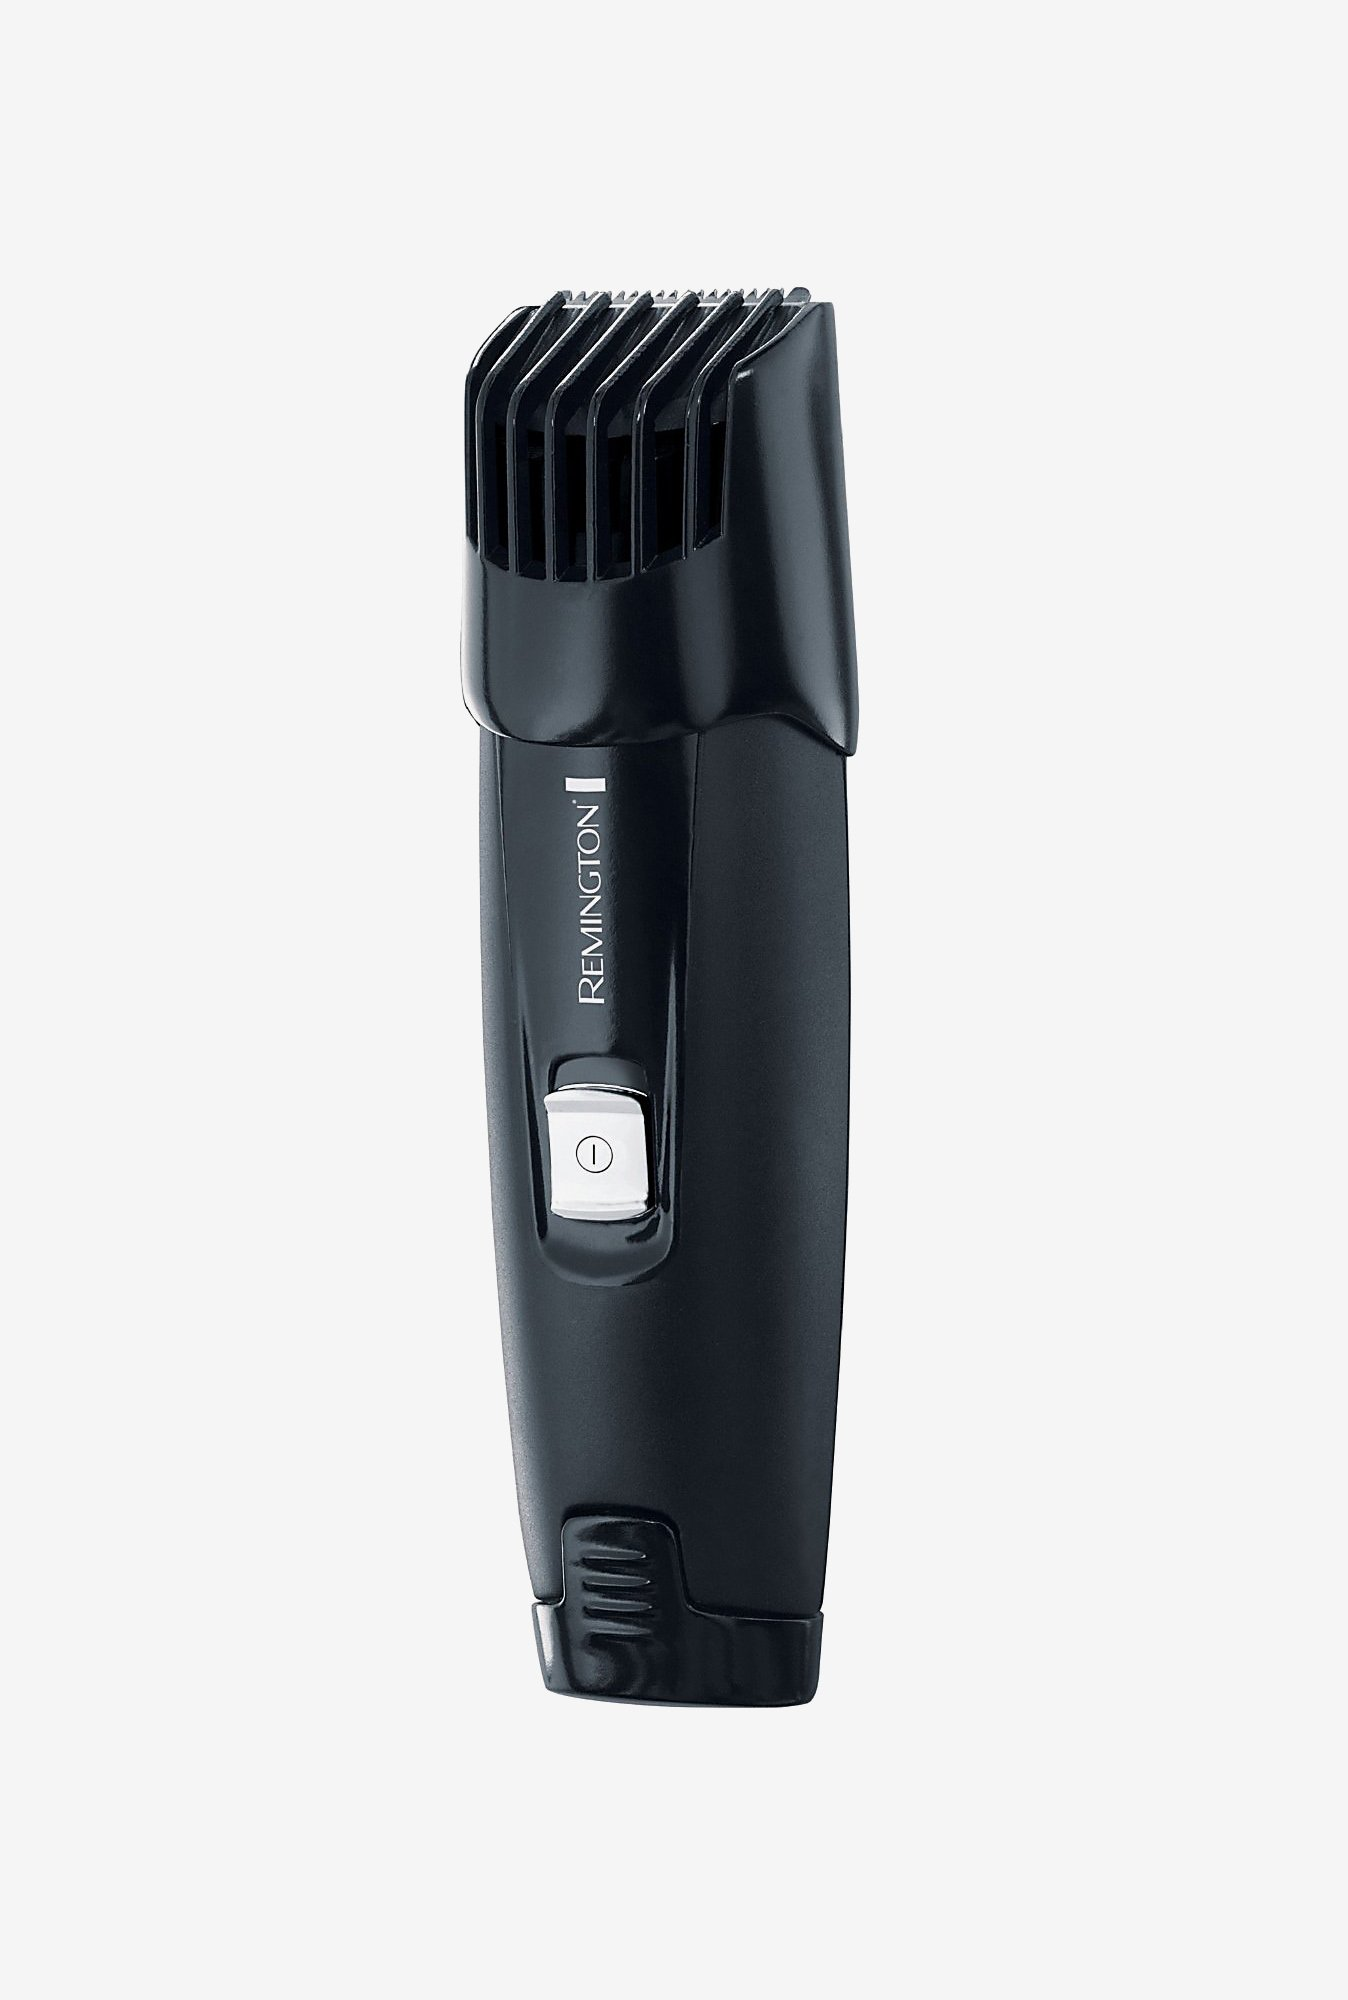 Remington MB4010 Horizon Beard & Stubble Trimmer (Black)